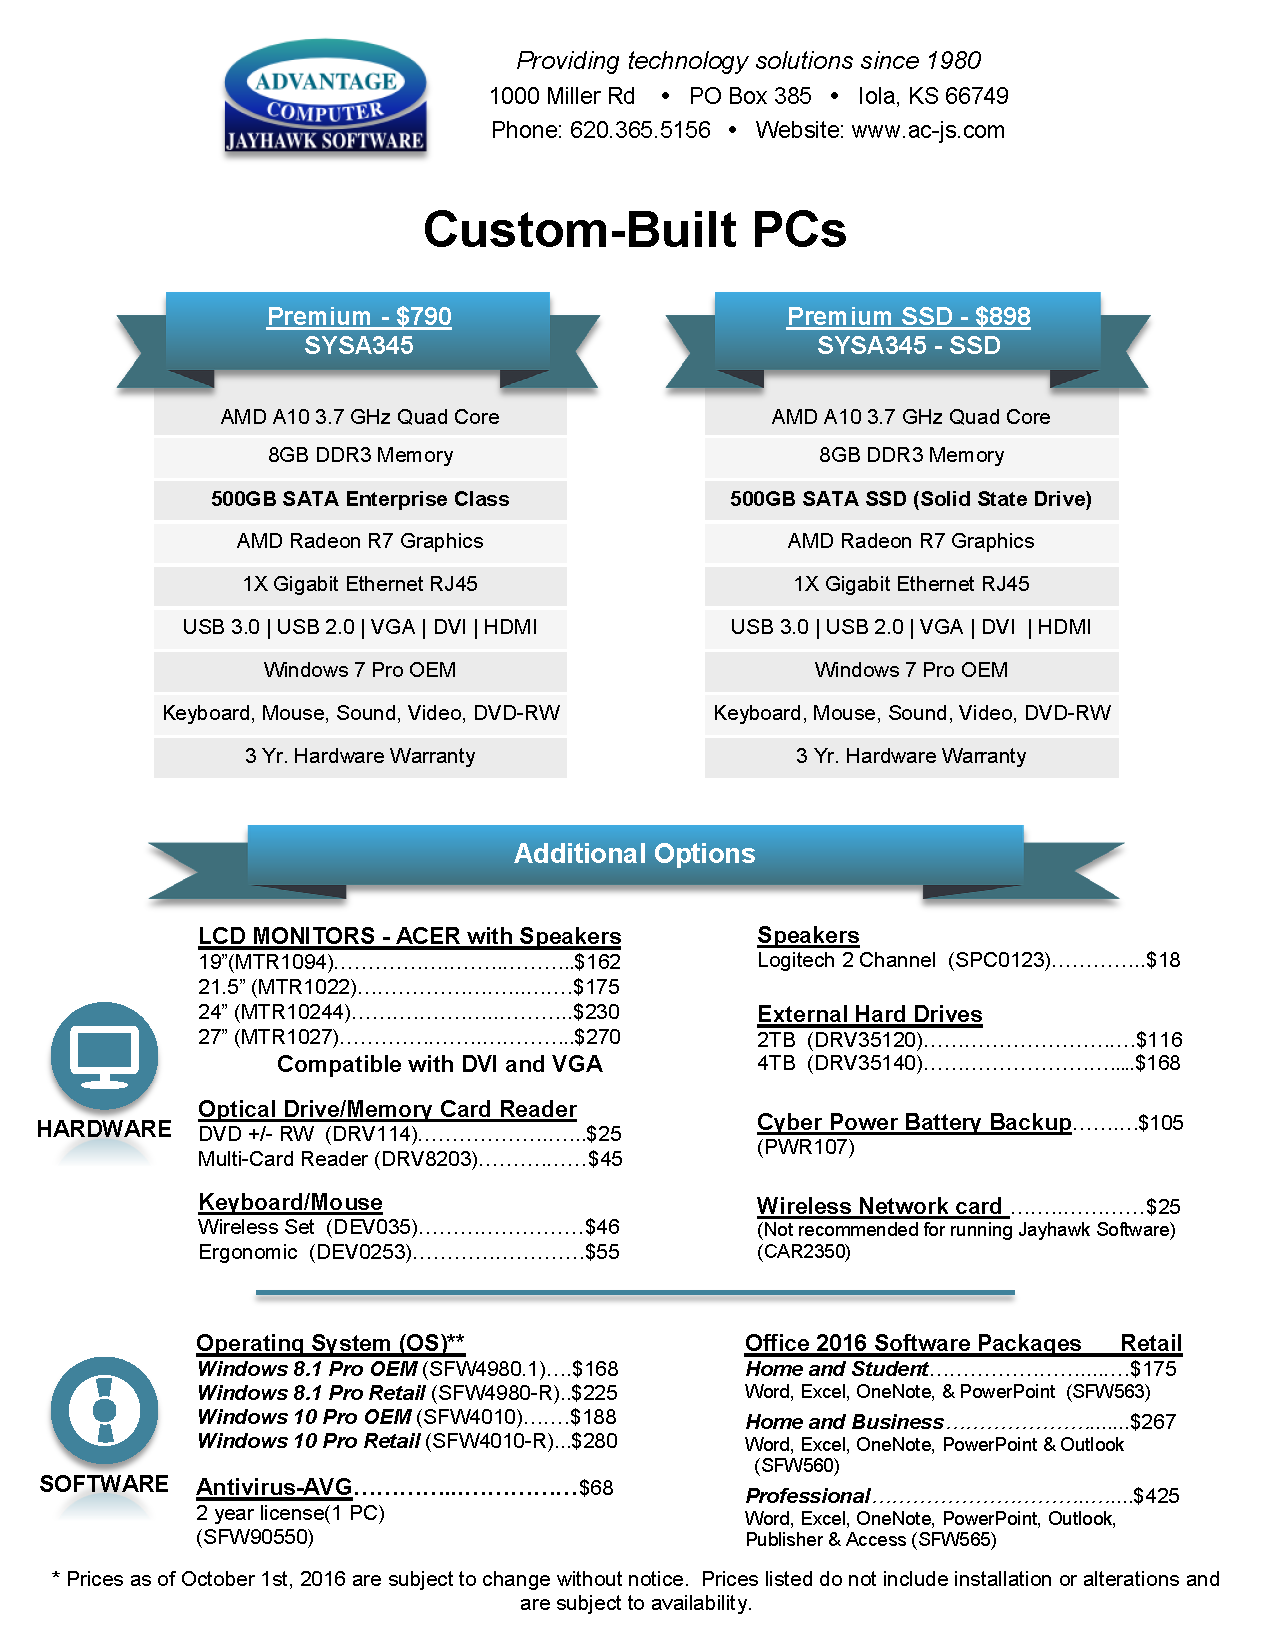 custom built PCs, computer, sale, SSD, advantage computers, jayhawk software